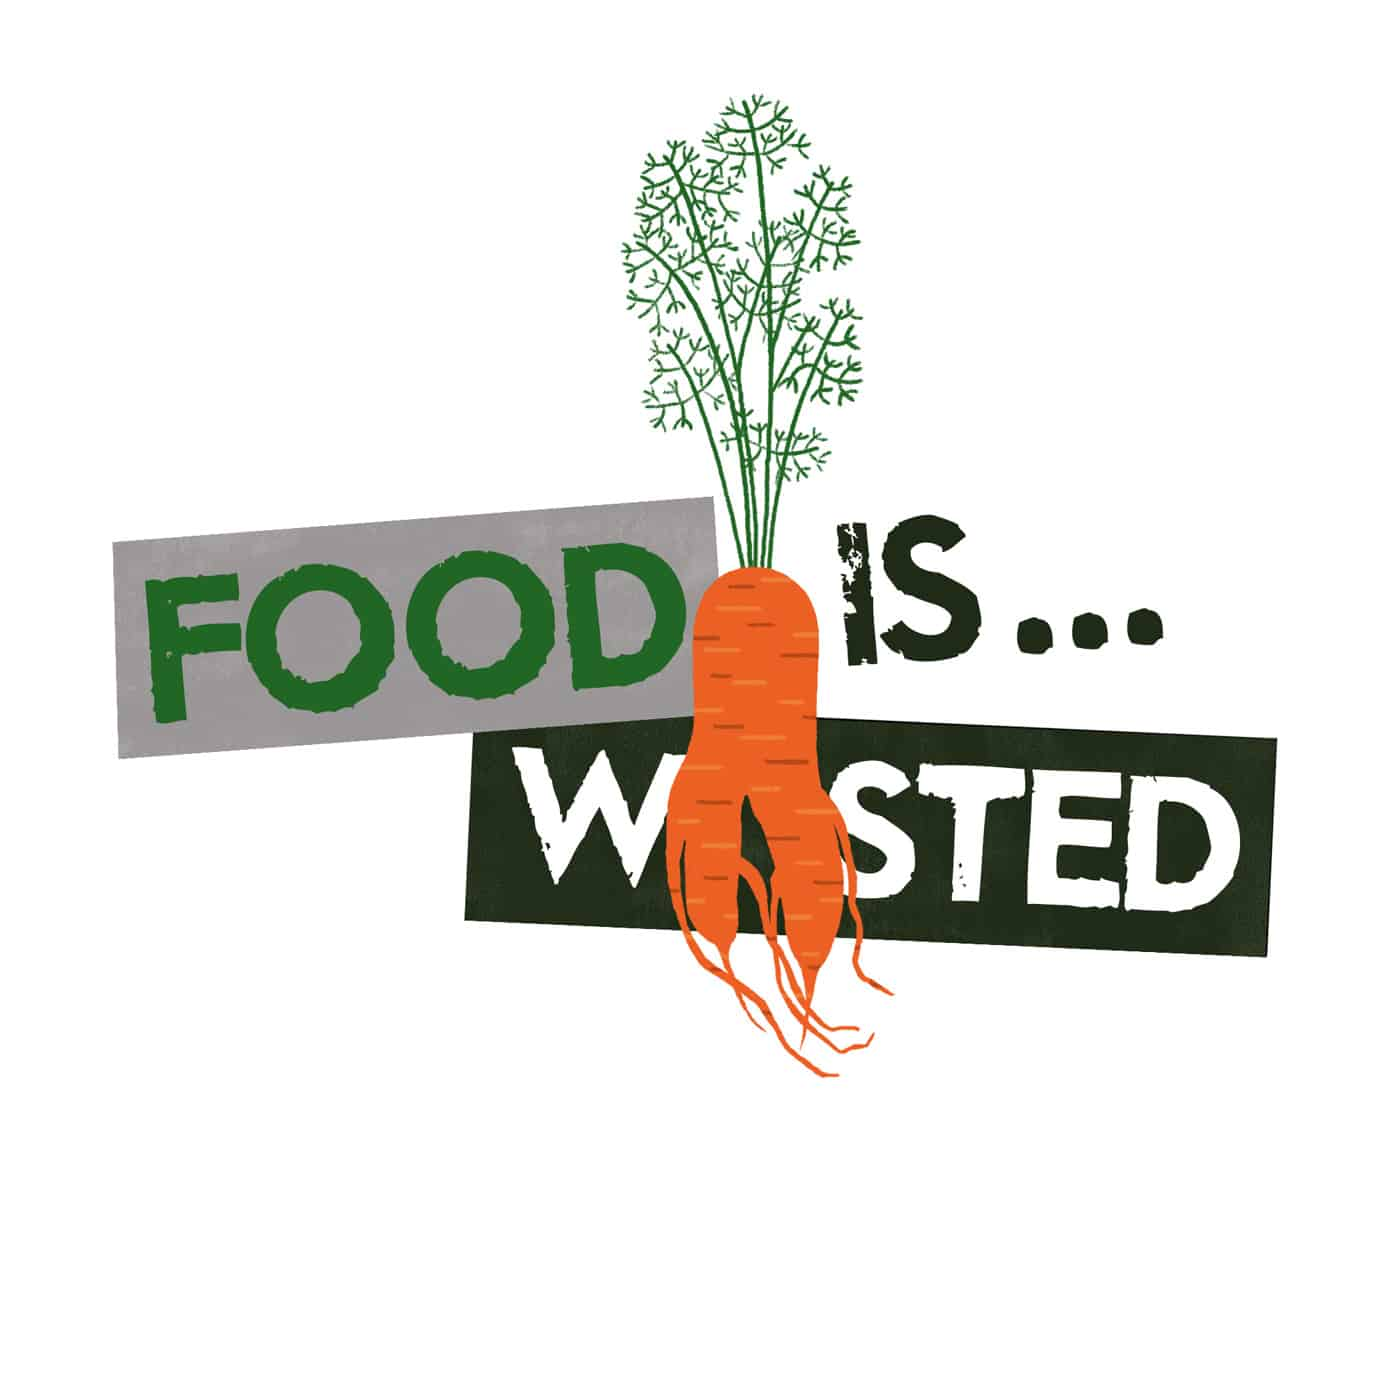 Food is Wasted logo - Podcast production by Open Eye Media